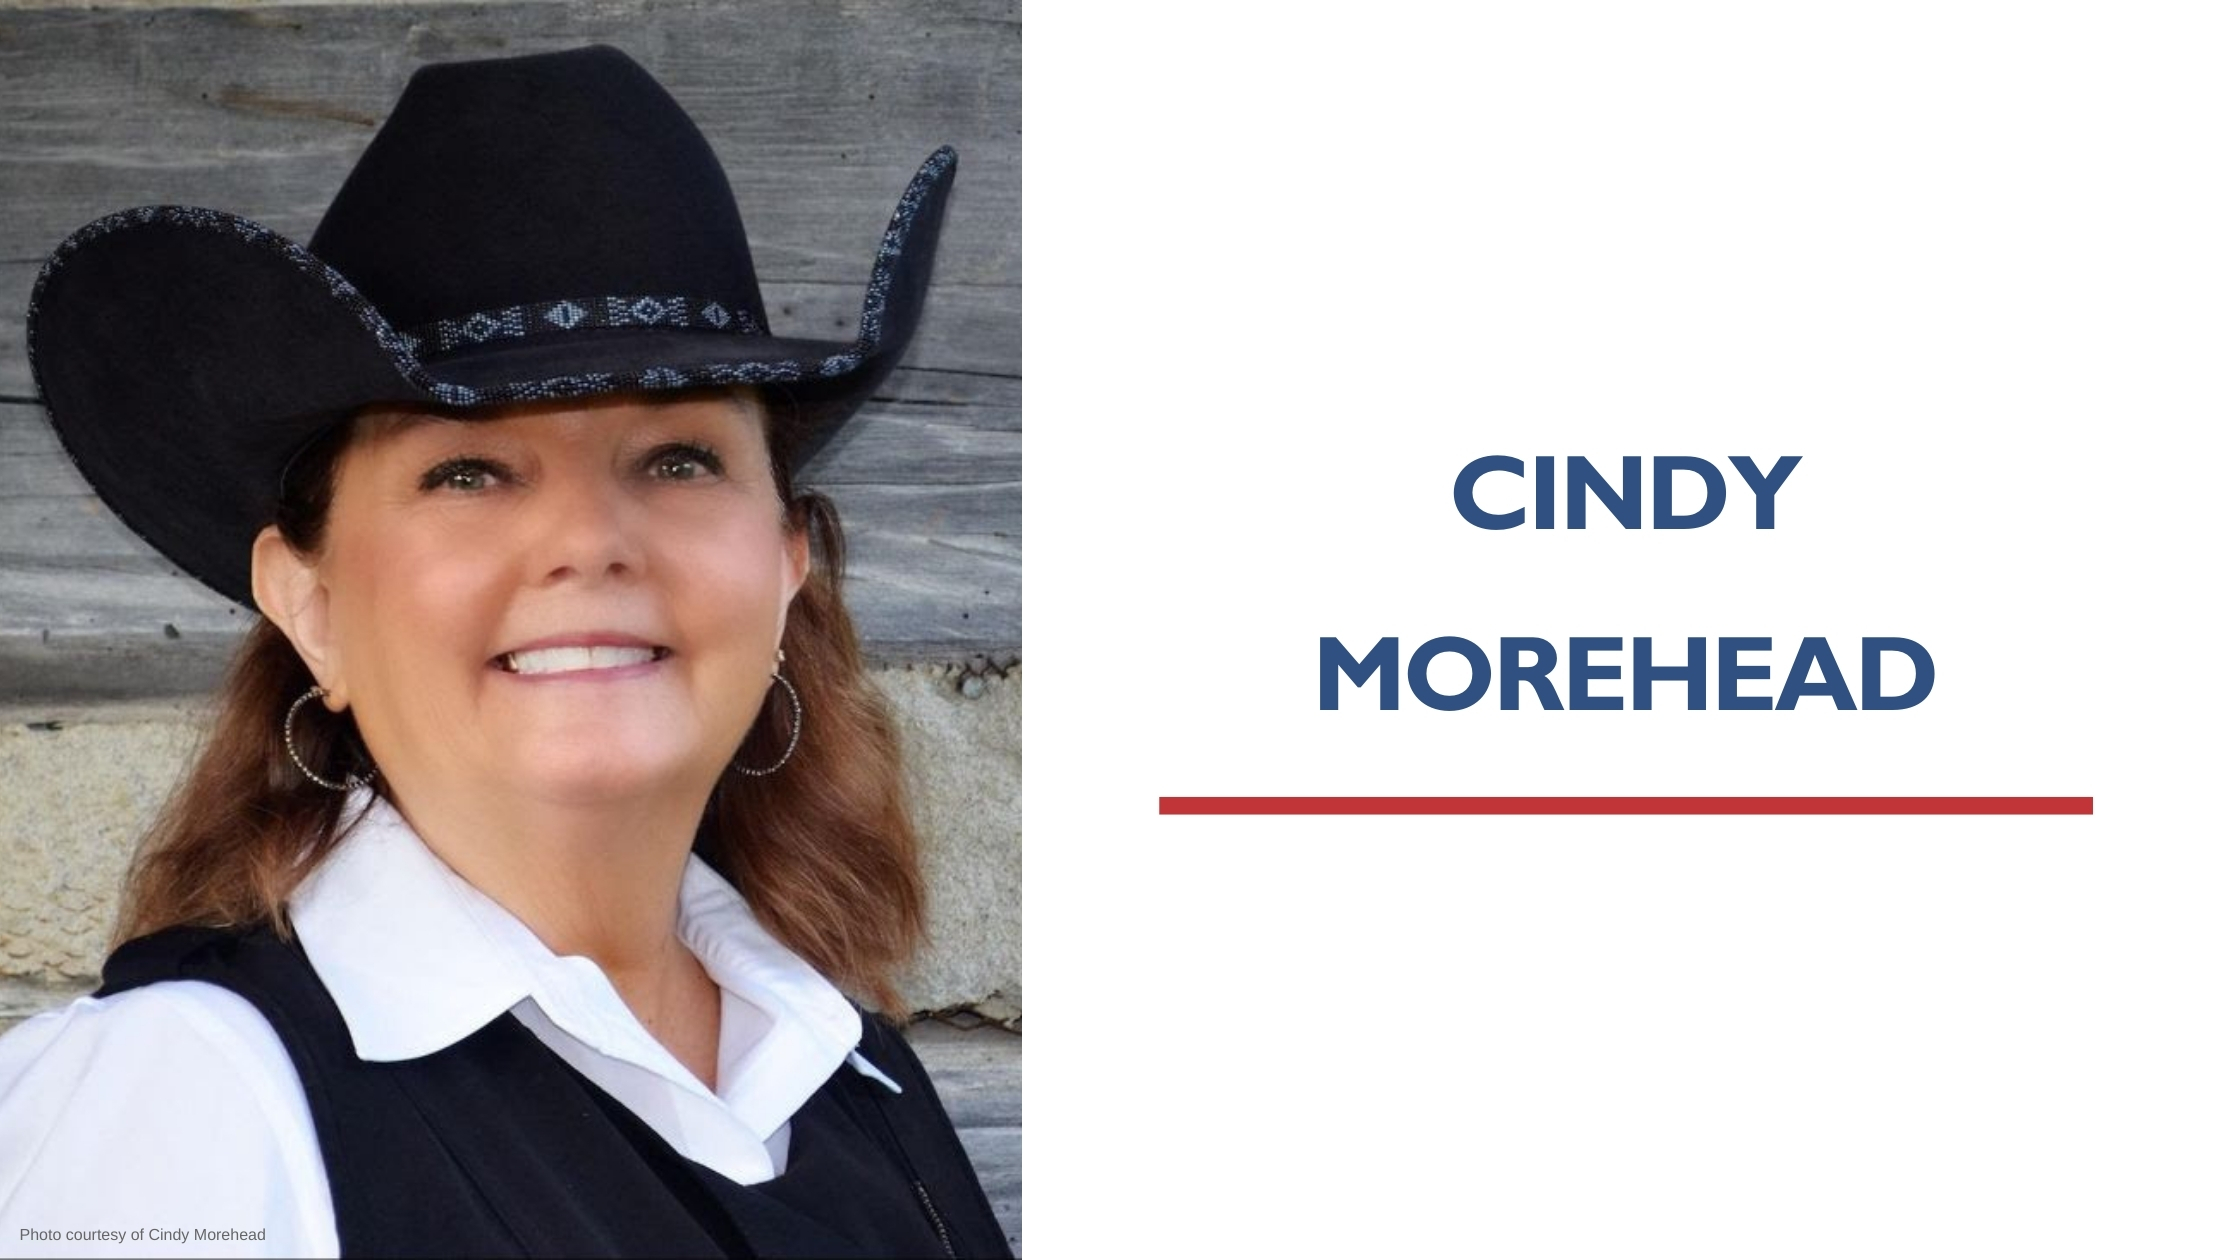 ihsa-hall-of-fame-cindy-morehead